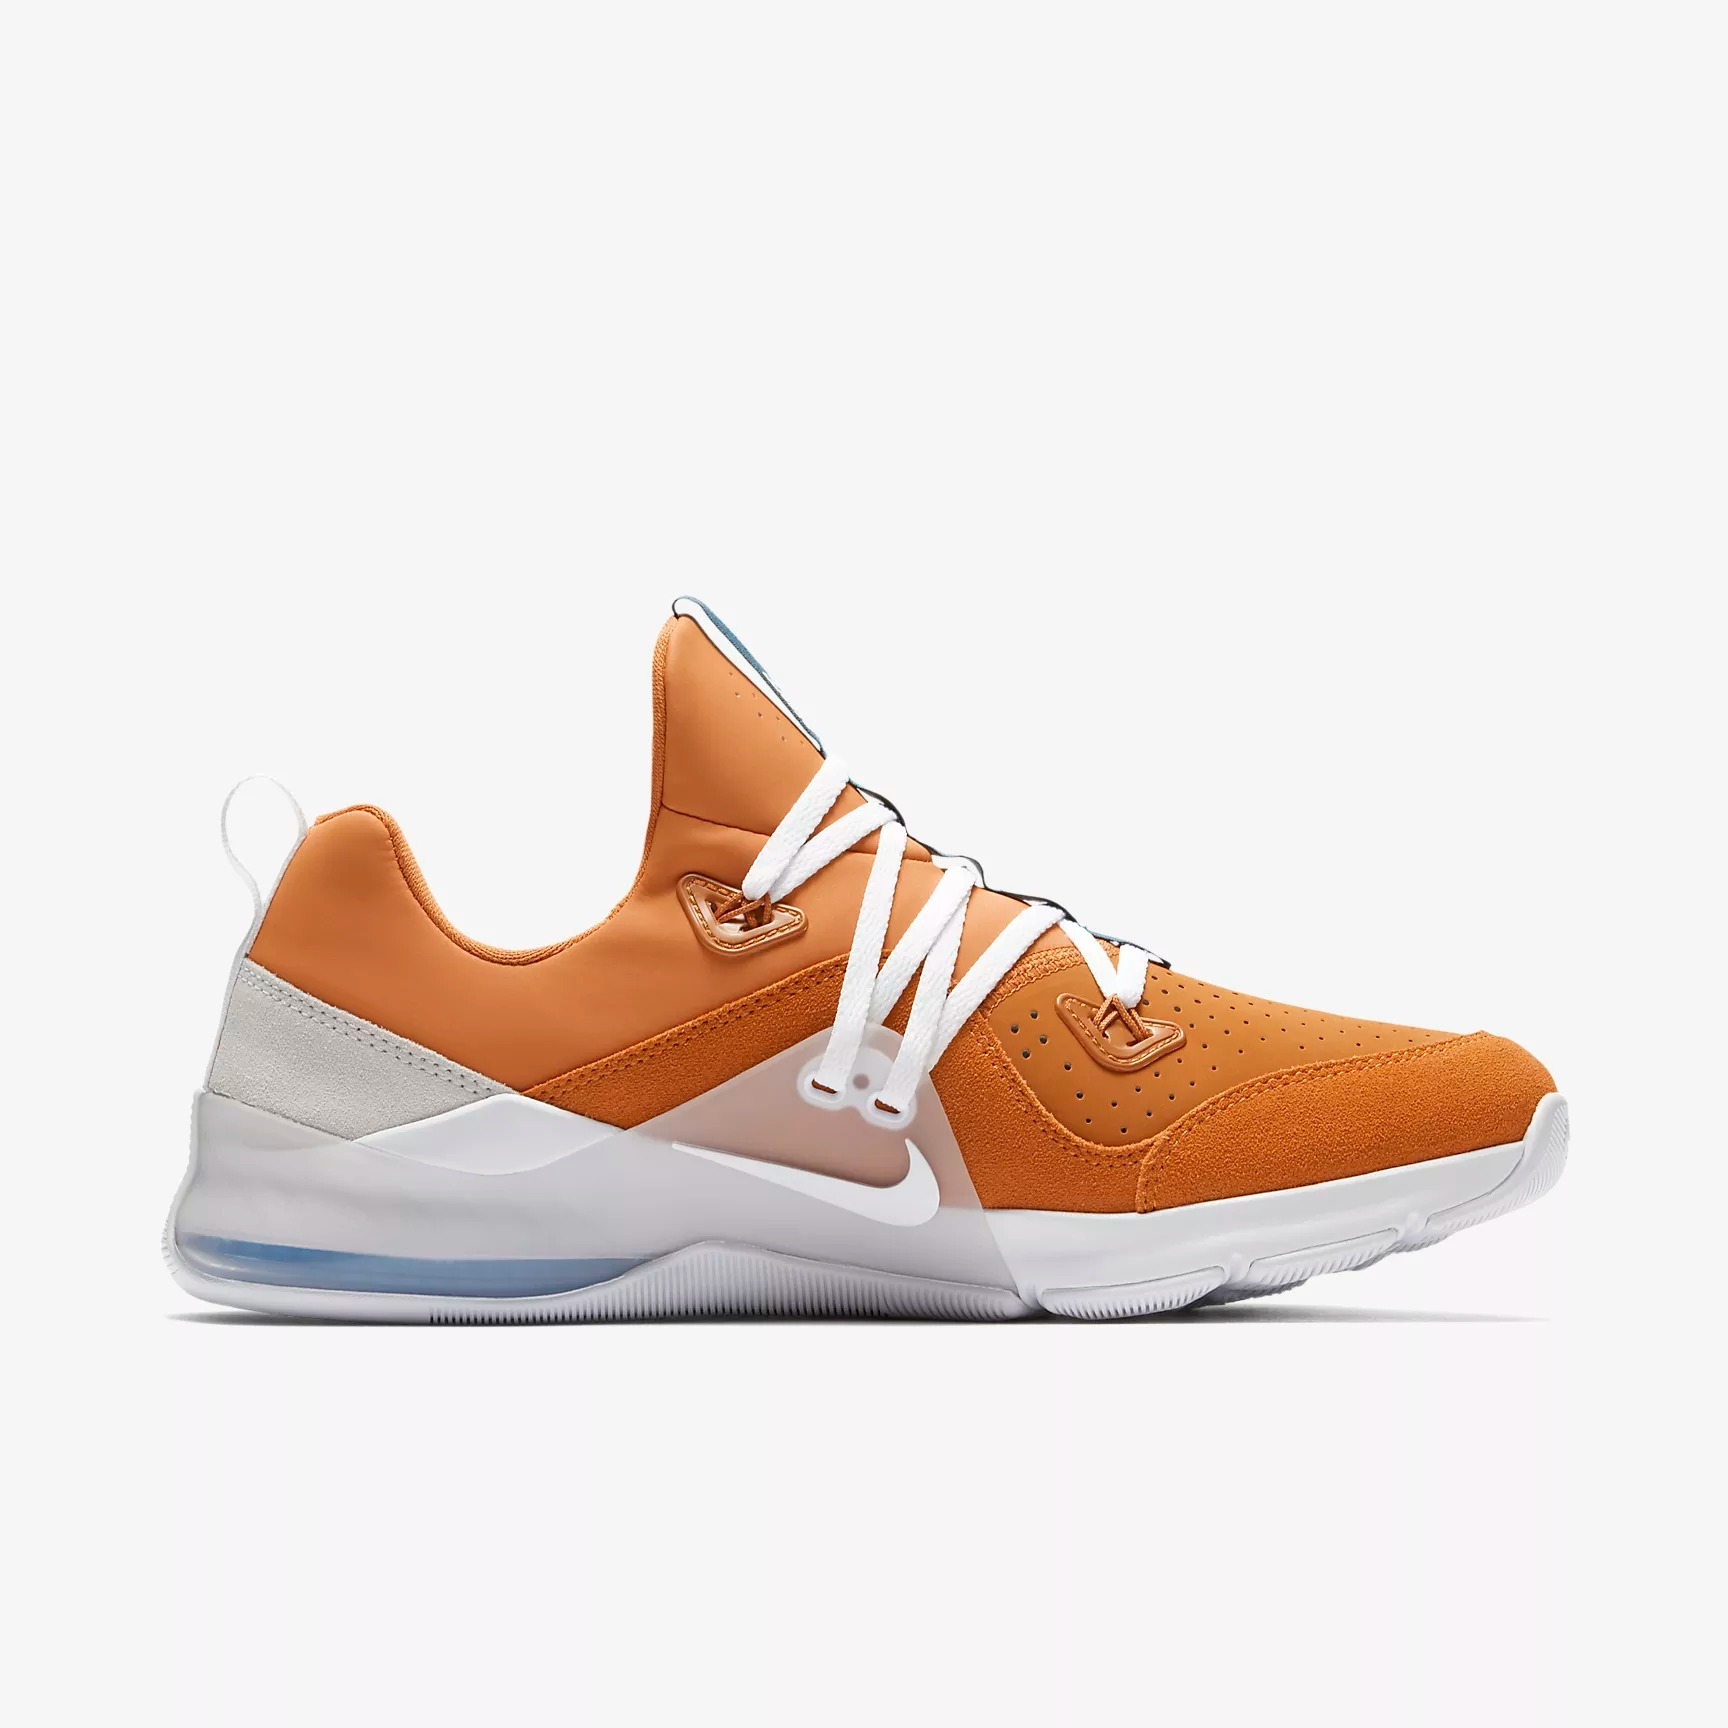 9fb4b640a19a Nike Zoom Train Command Leather Trainers - SPORT SHOES TRAINING ...